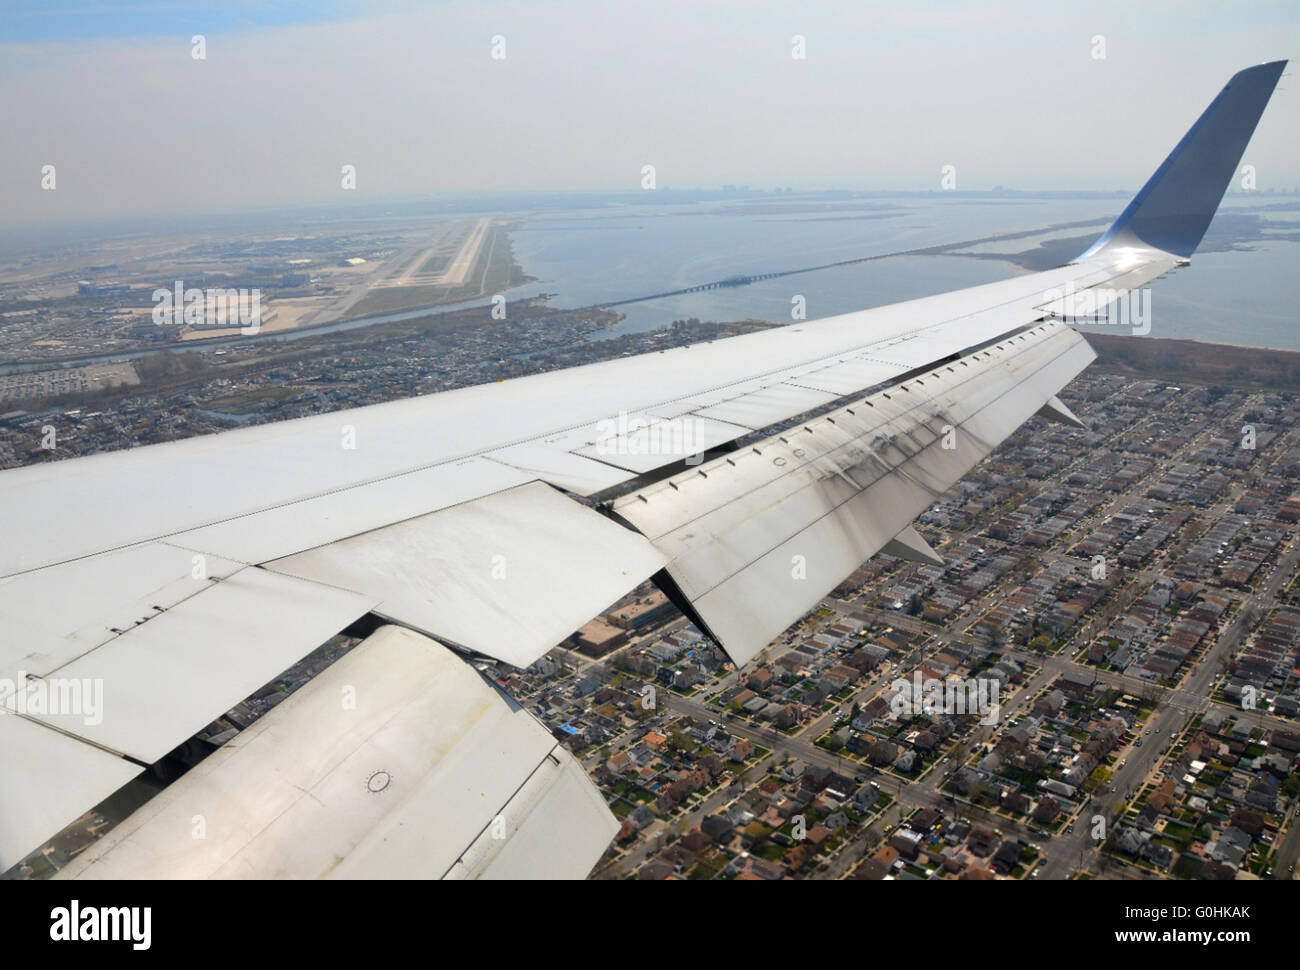 On final approach to New York's JFK Airport - Stock Image